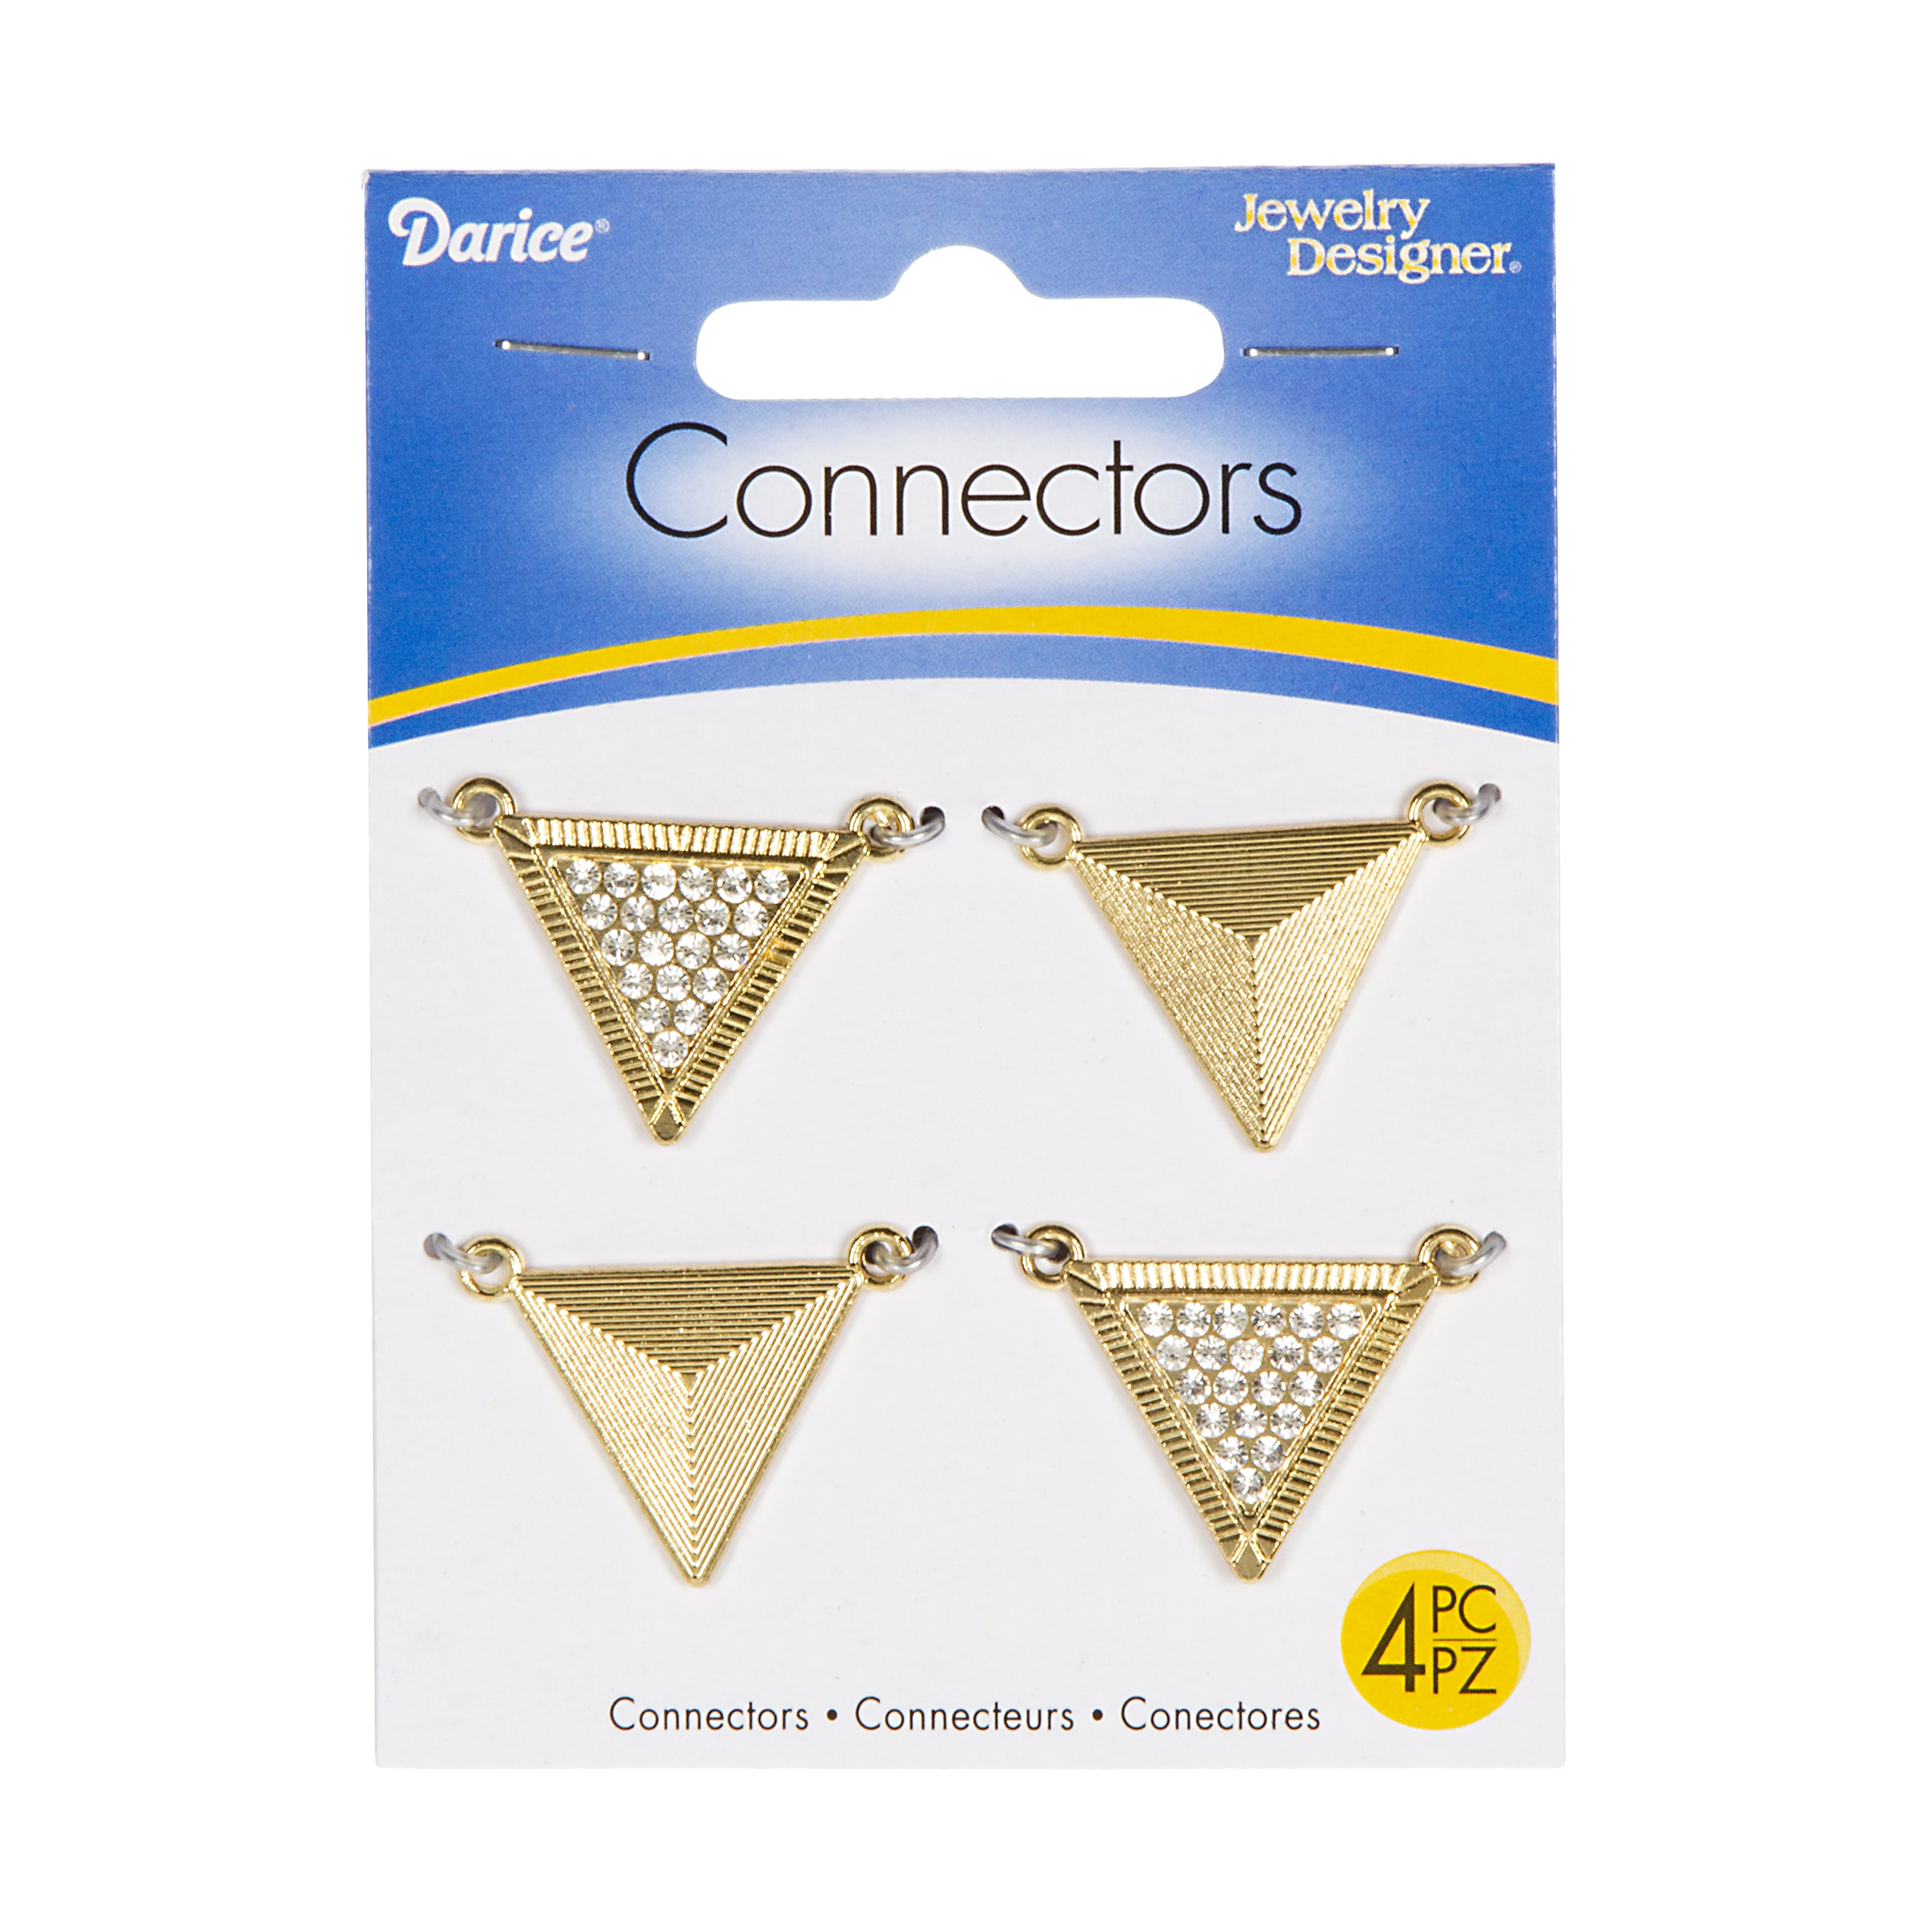 Gold Triangle Shaped Connectors, Lined and Rhinestone Accented, 4pcs.